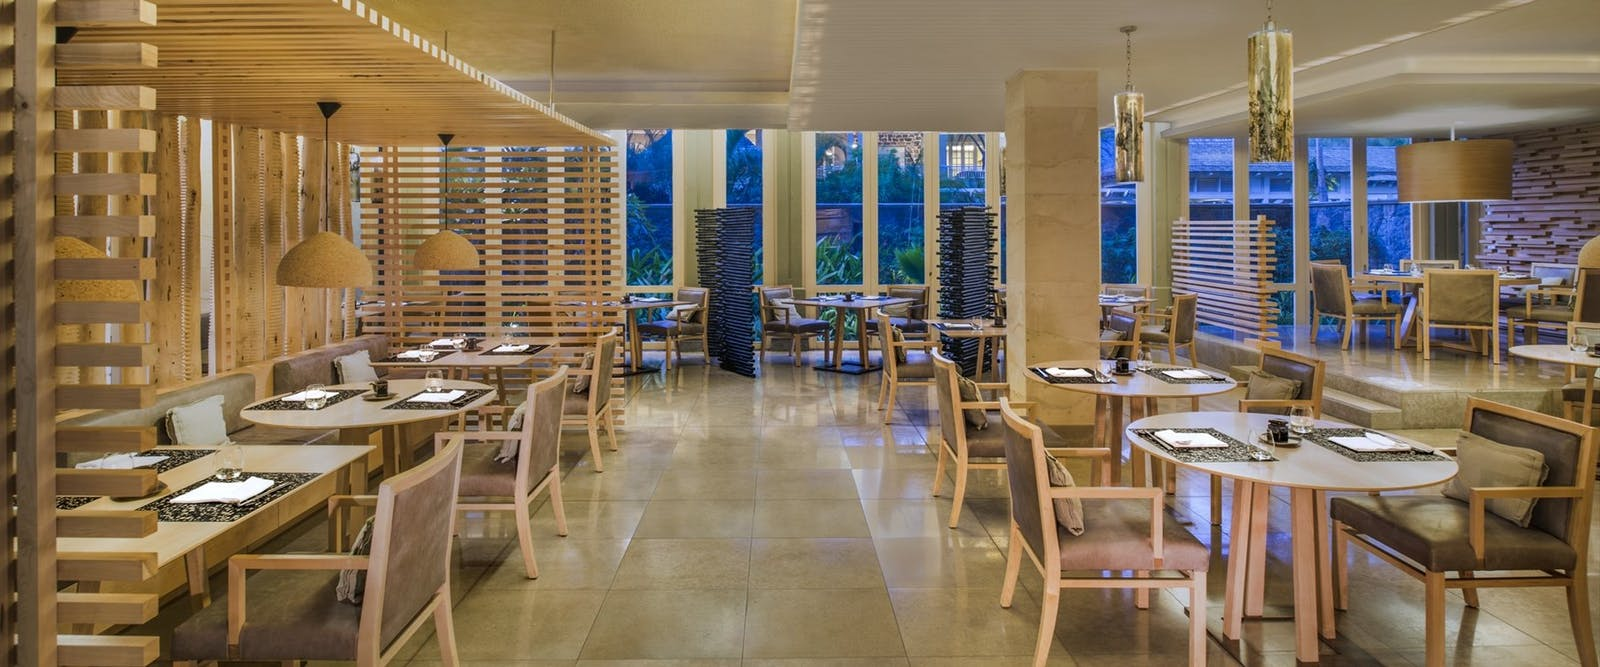 Atsuko restaurant at The St. Regis Mauritius Resort